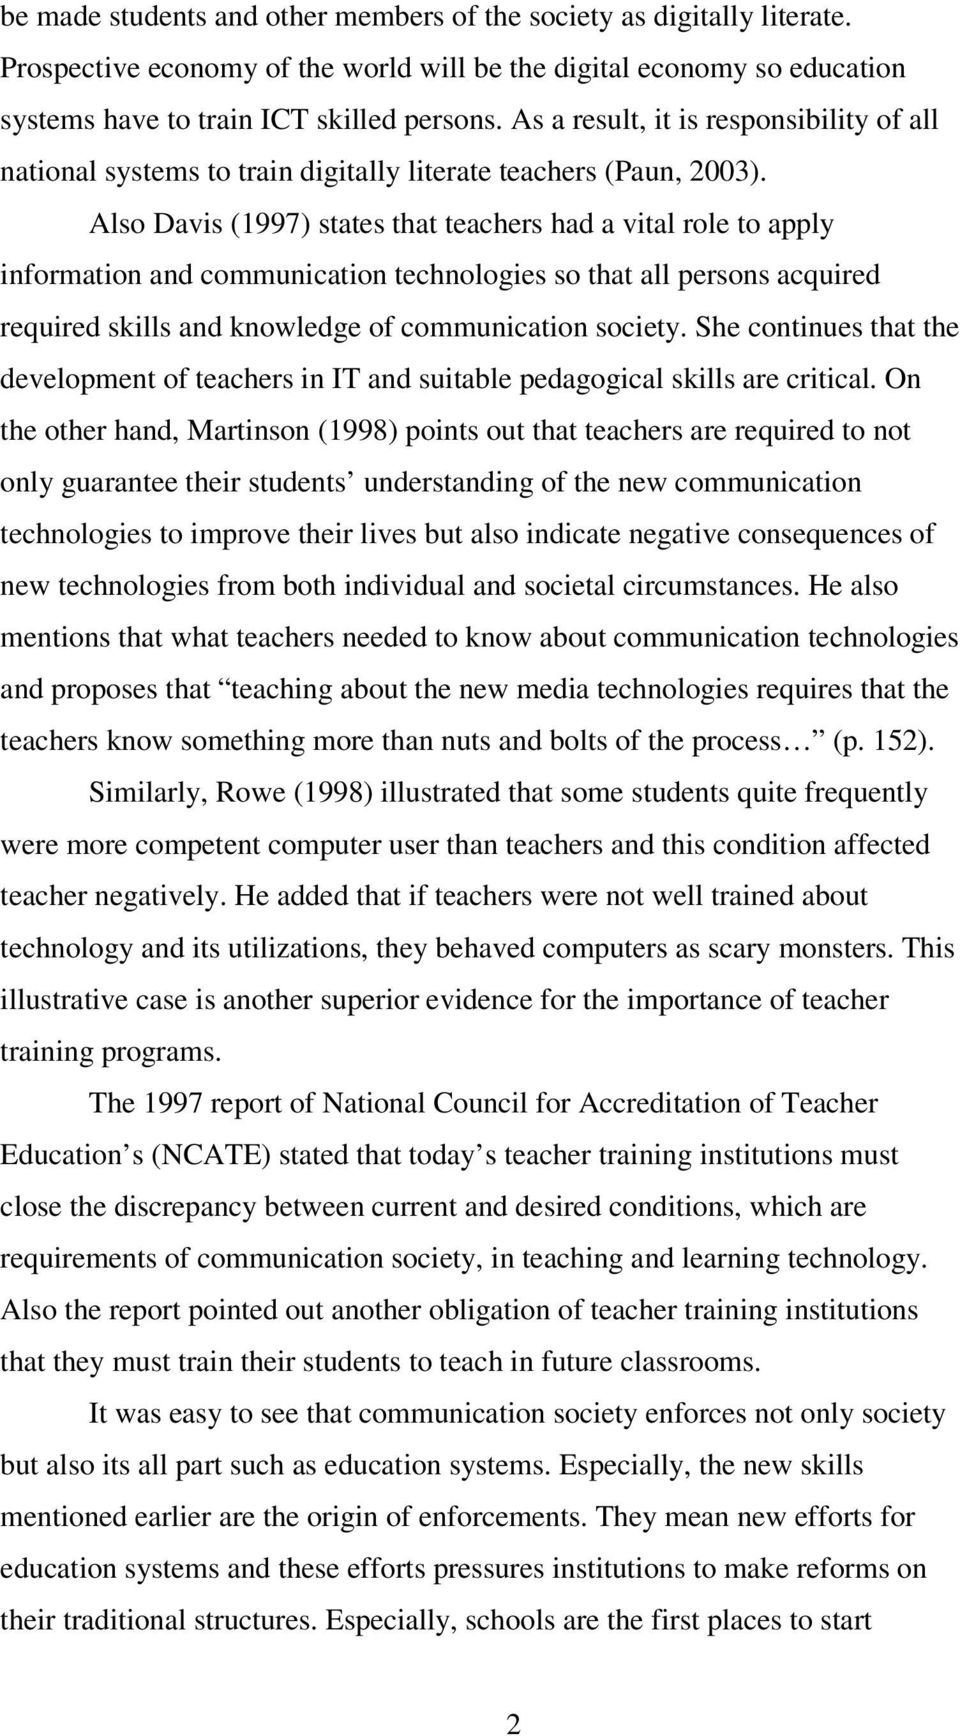 Also Davis (1997) states that teachers had a vital role to apply information and communication technologies so that all persons acquired required skills and knowledge of communication society.